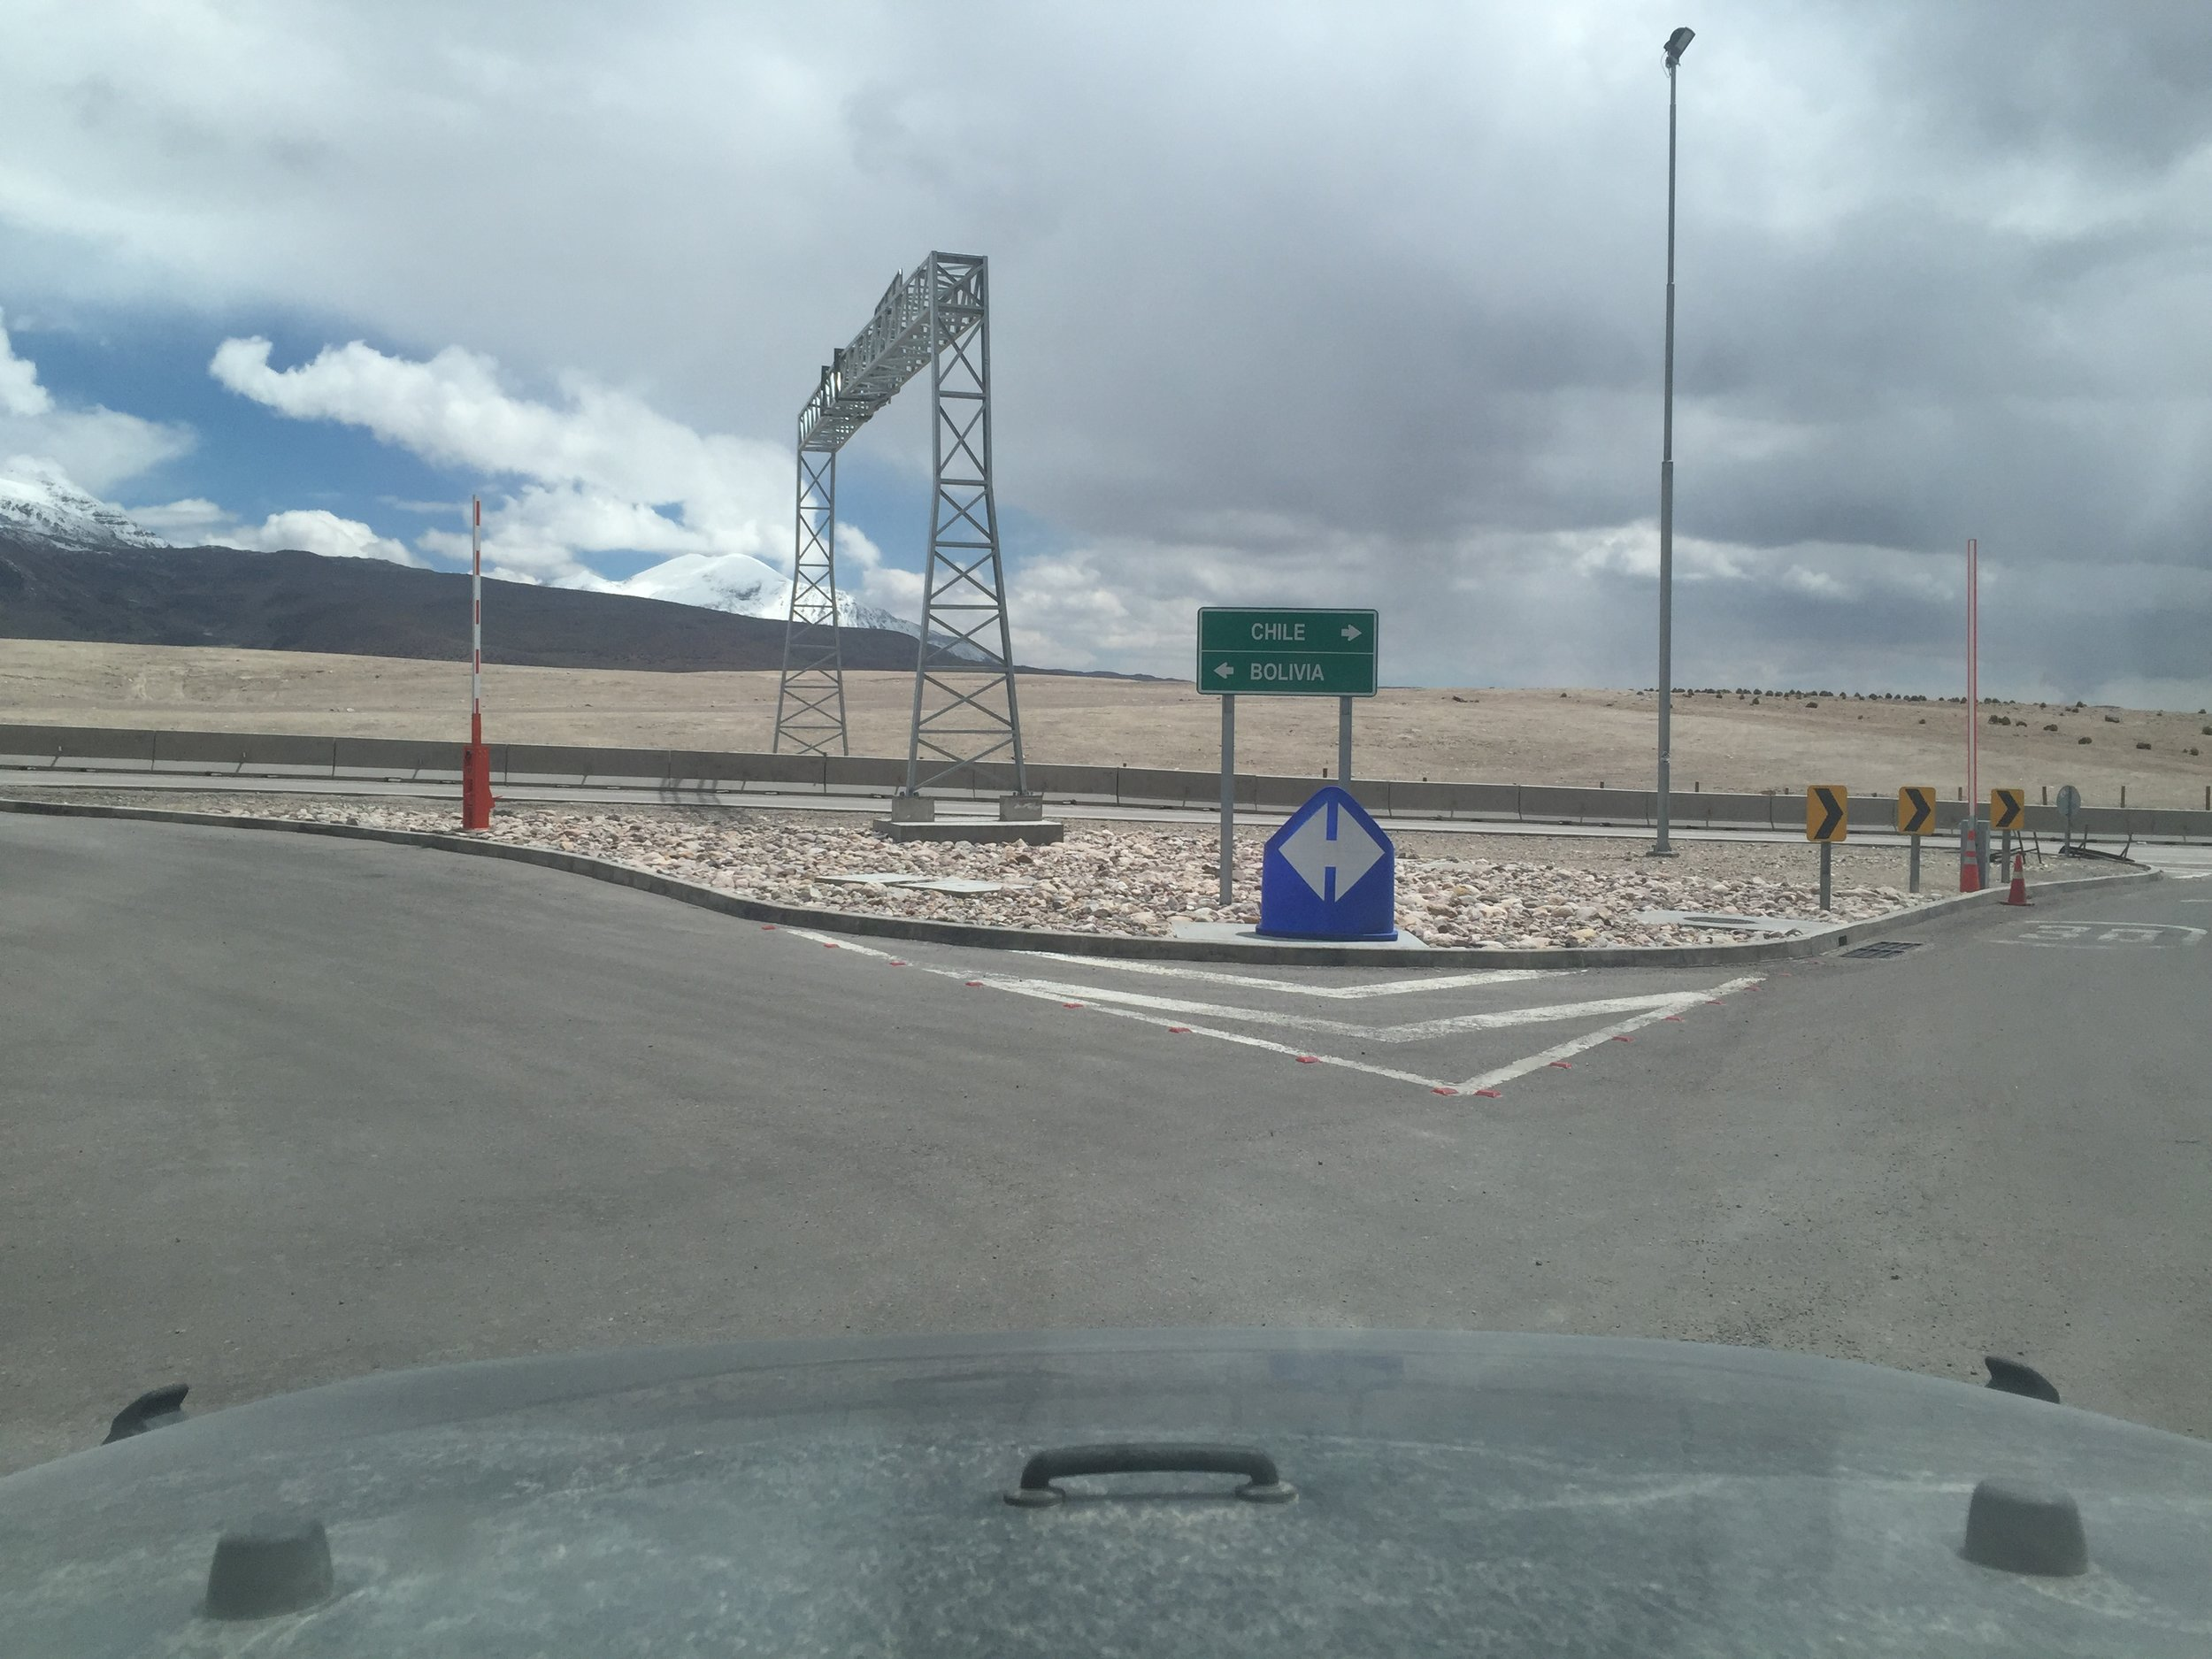 Here is an intersection. This precise one is at the border after Peru, where you can choose to go to Chile or Bolivia.